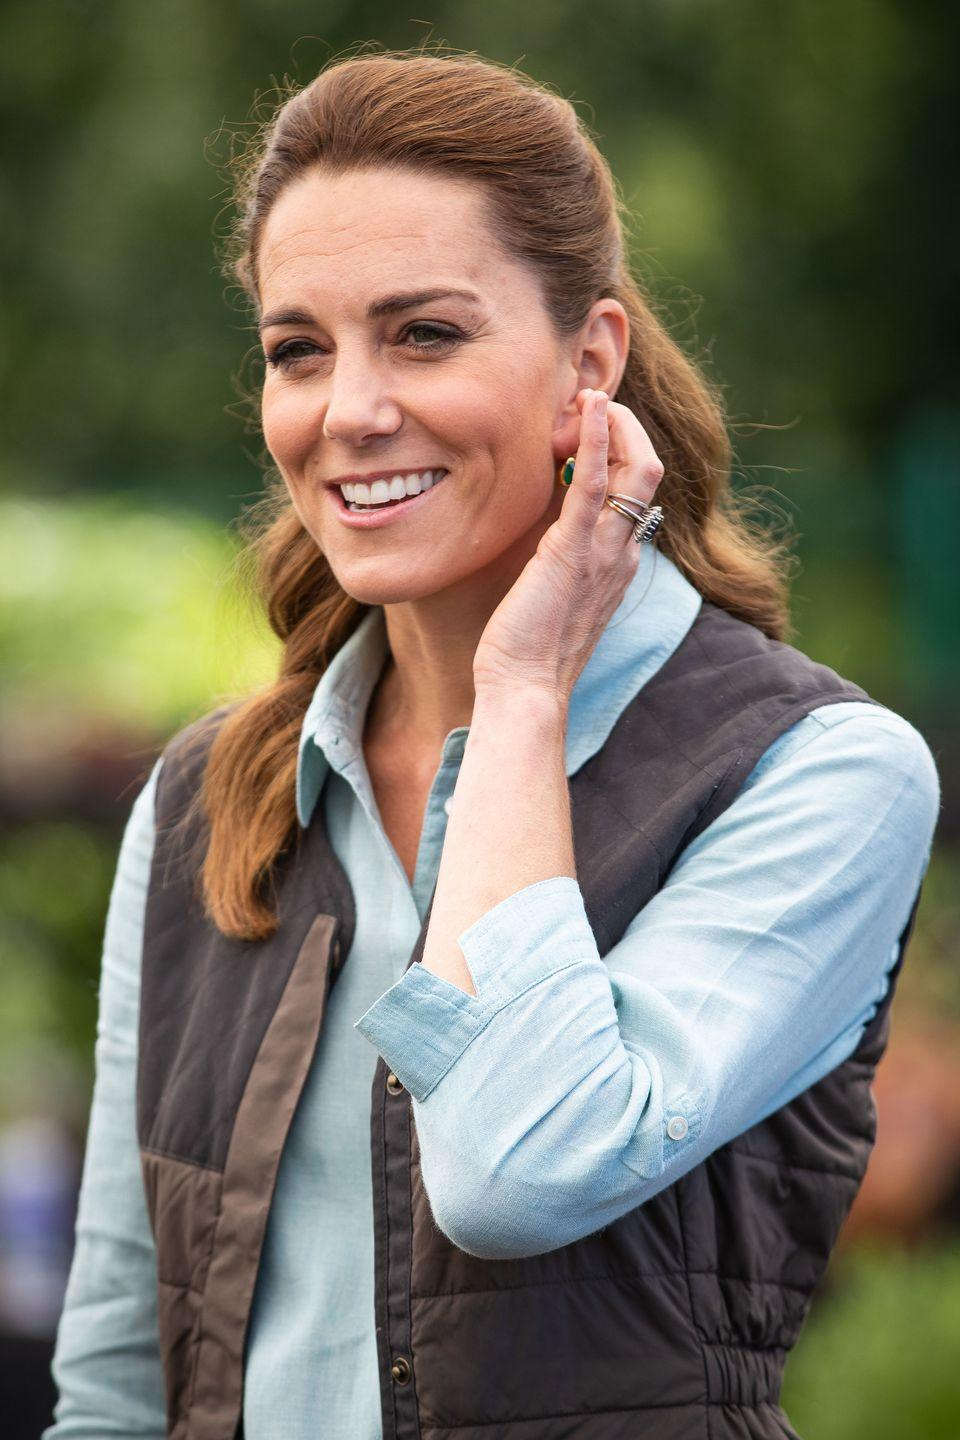 <p>Kate Middleton is back with a new, brighter look for the summer. The Duchess of Cambridge unveiled a bronde hair color with soft copper undertones, and she looks just dashing! By the way, in case you didn't know, bronde is a combination of blonde and brown hair. You don't have to pick one and get the best of both worlds!</p>